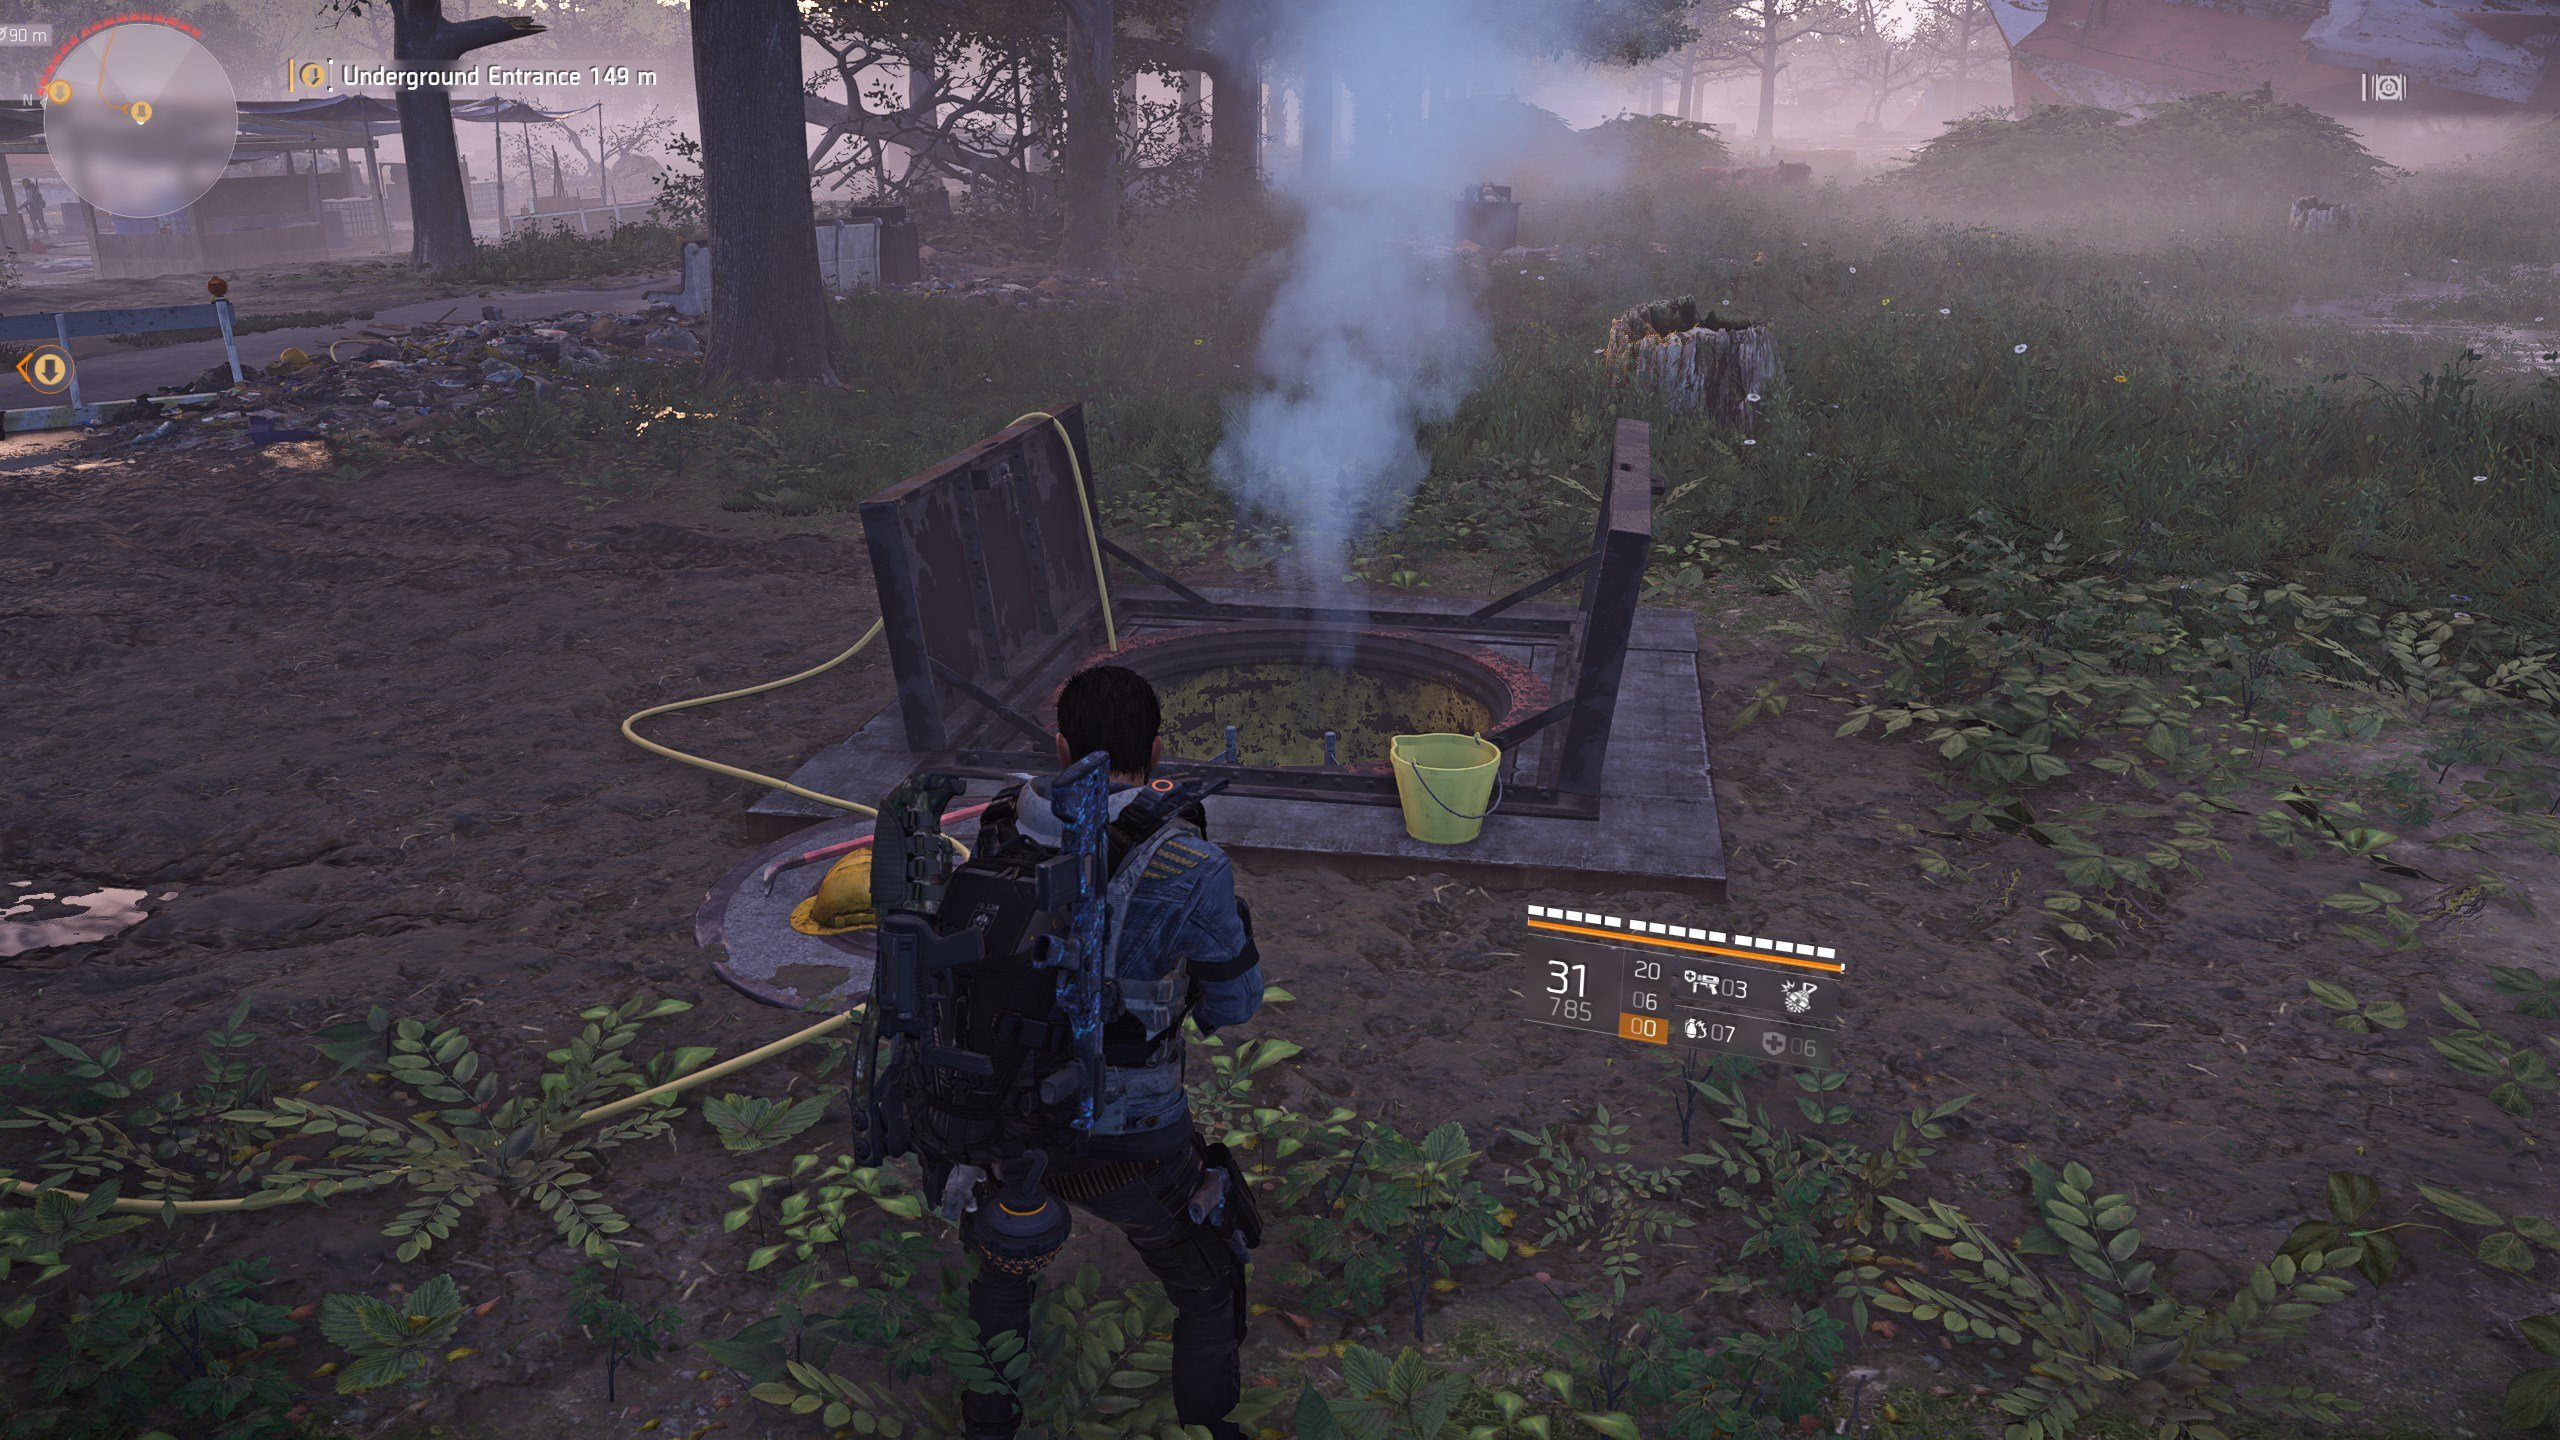 How to get Faction Cache Keys in The Division 2 - underground entrances